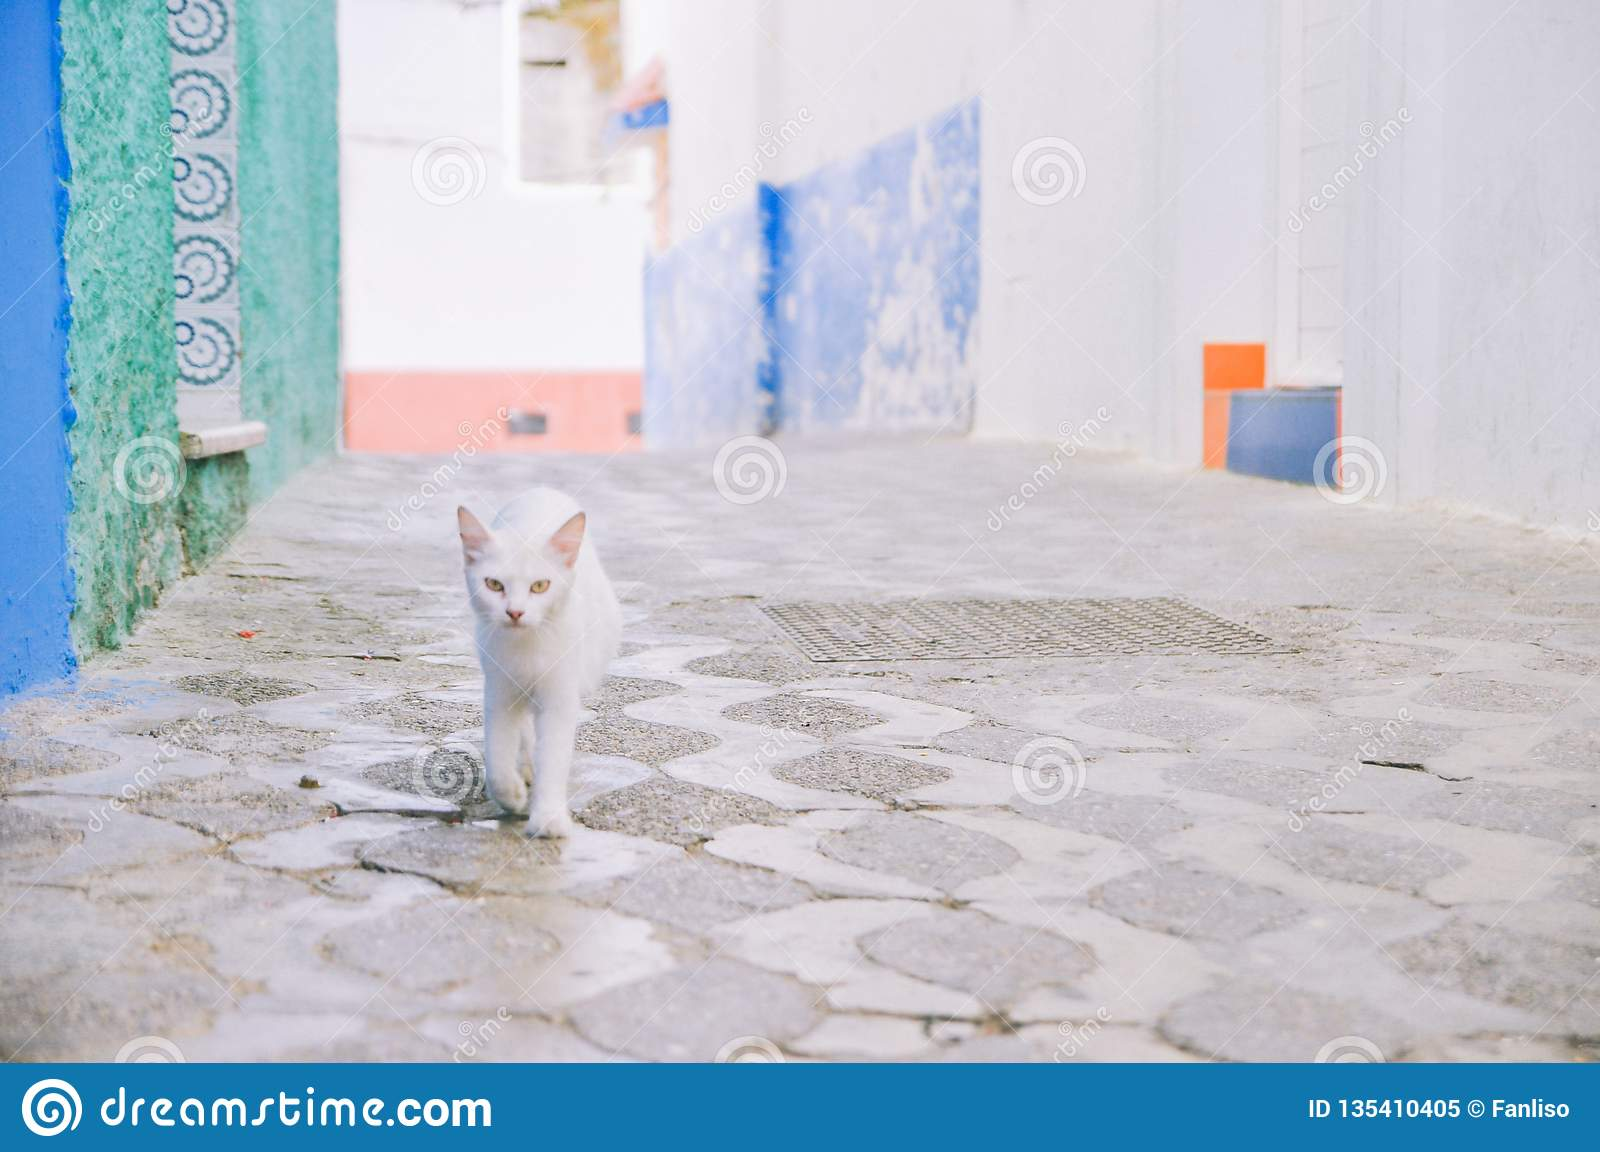 A white cat walks on alley